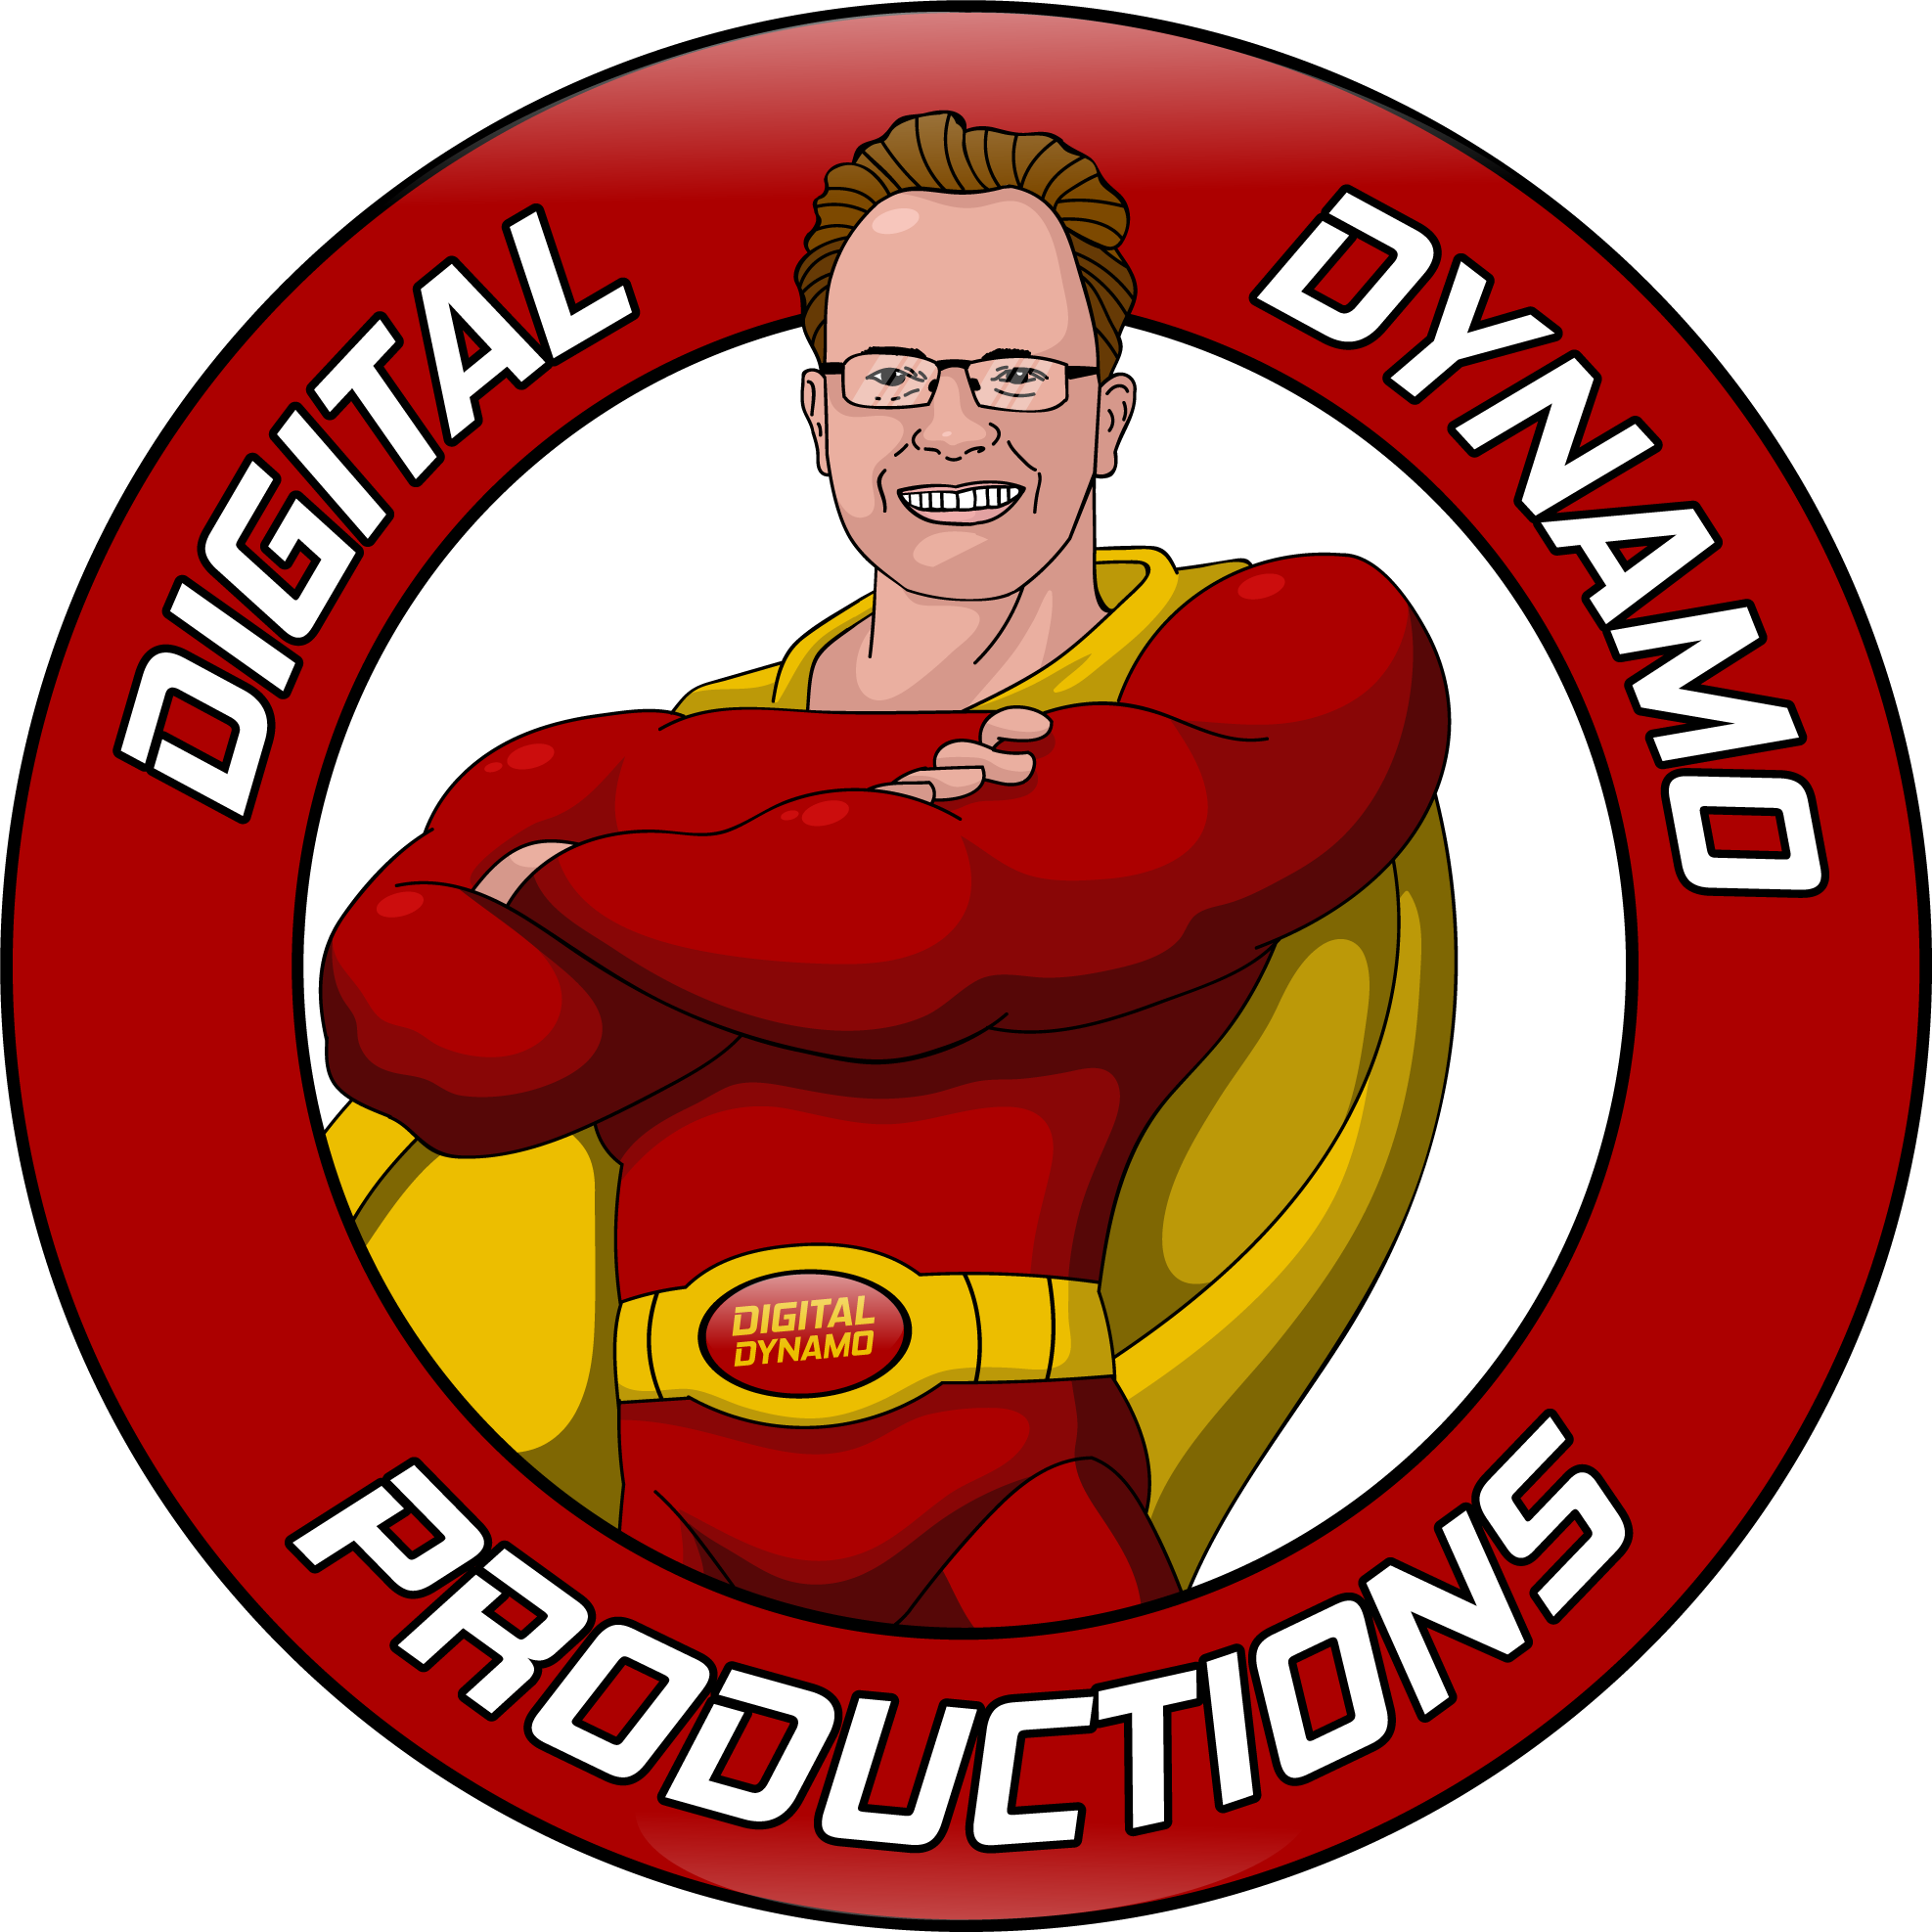 Digital Dynamo Productions